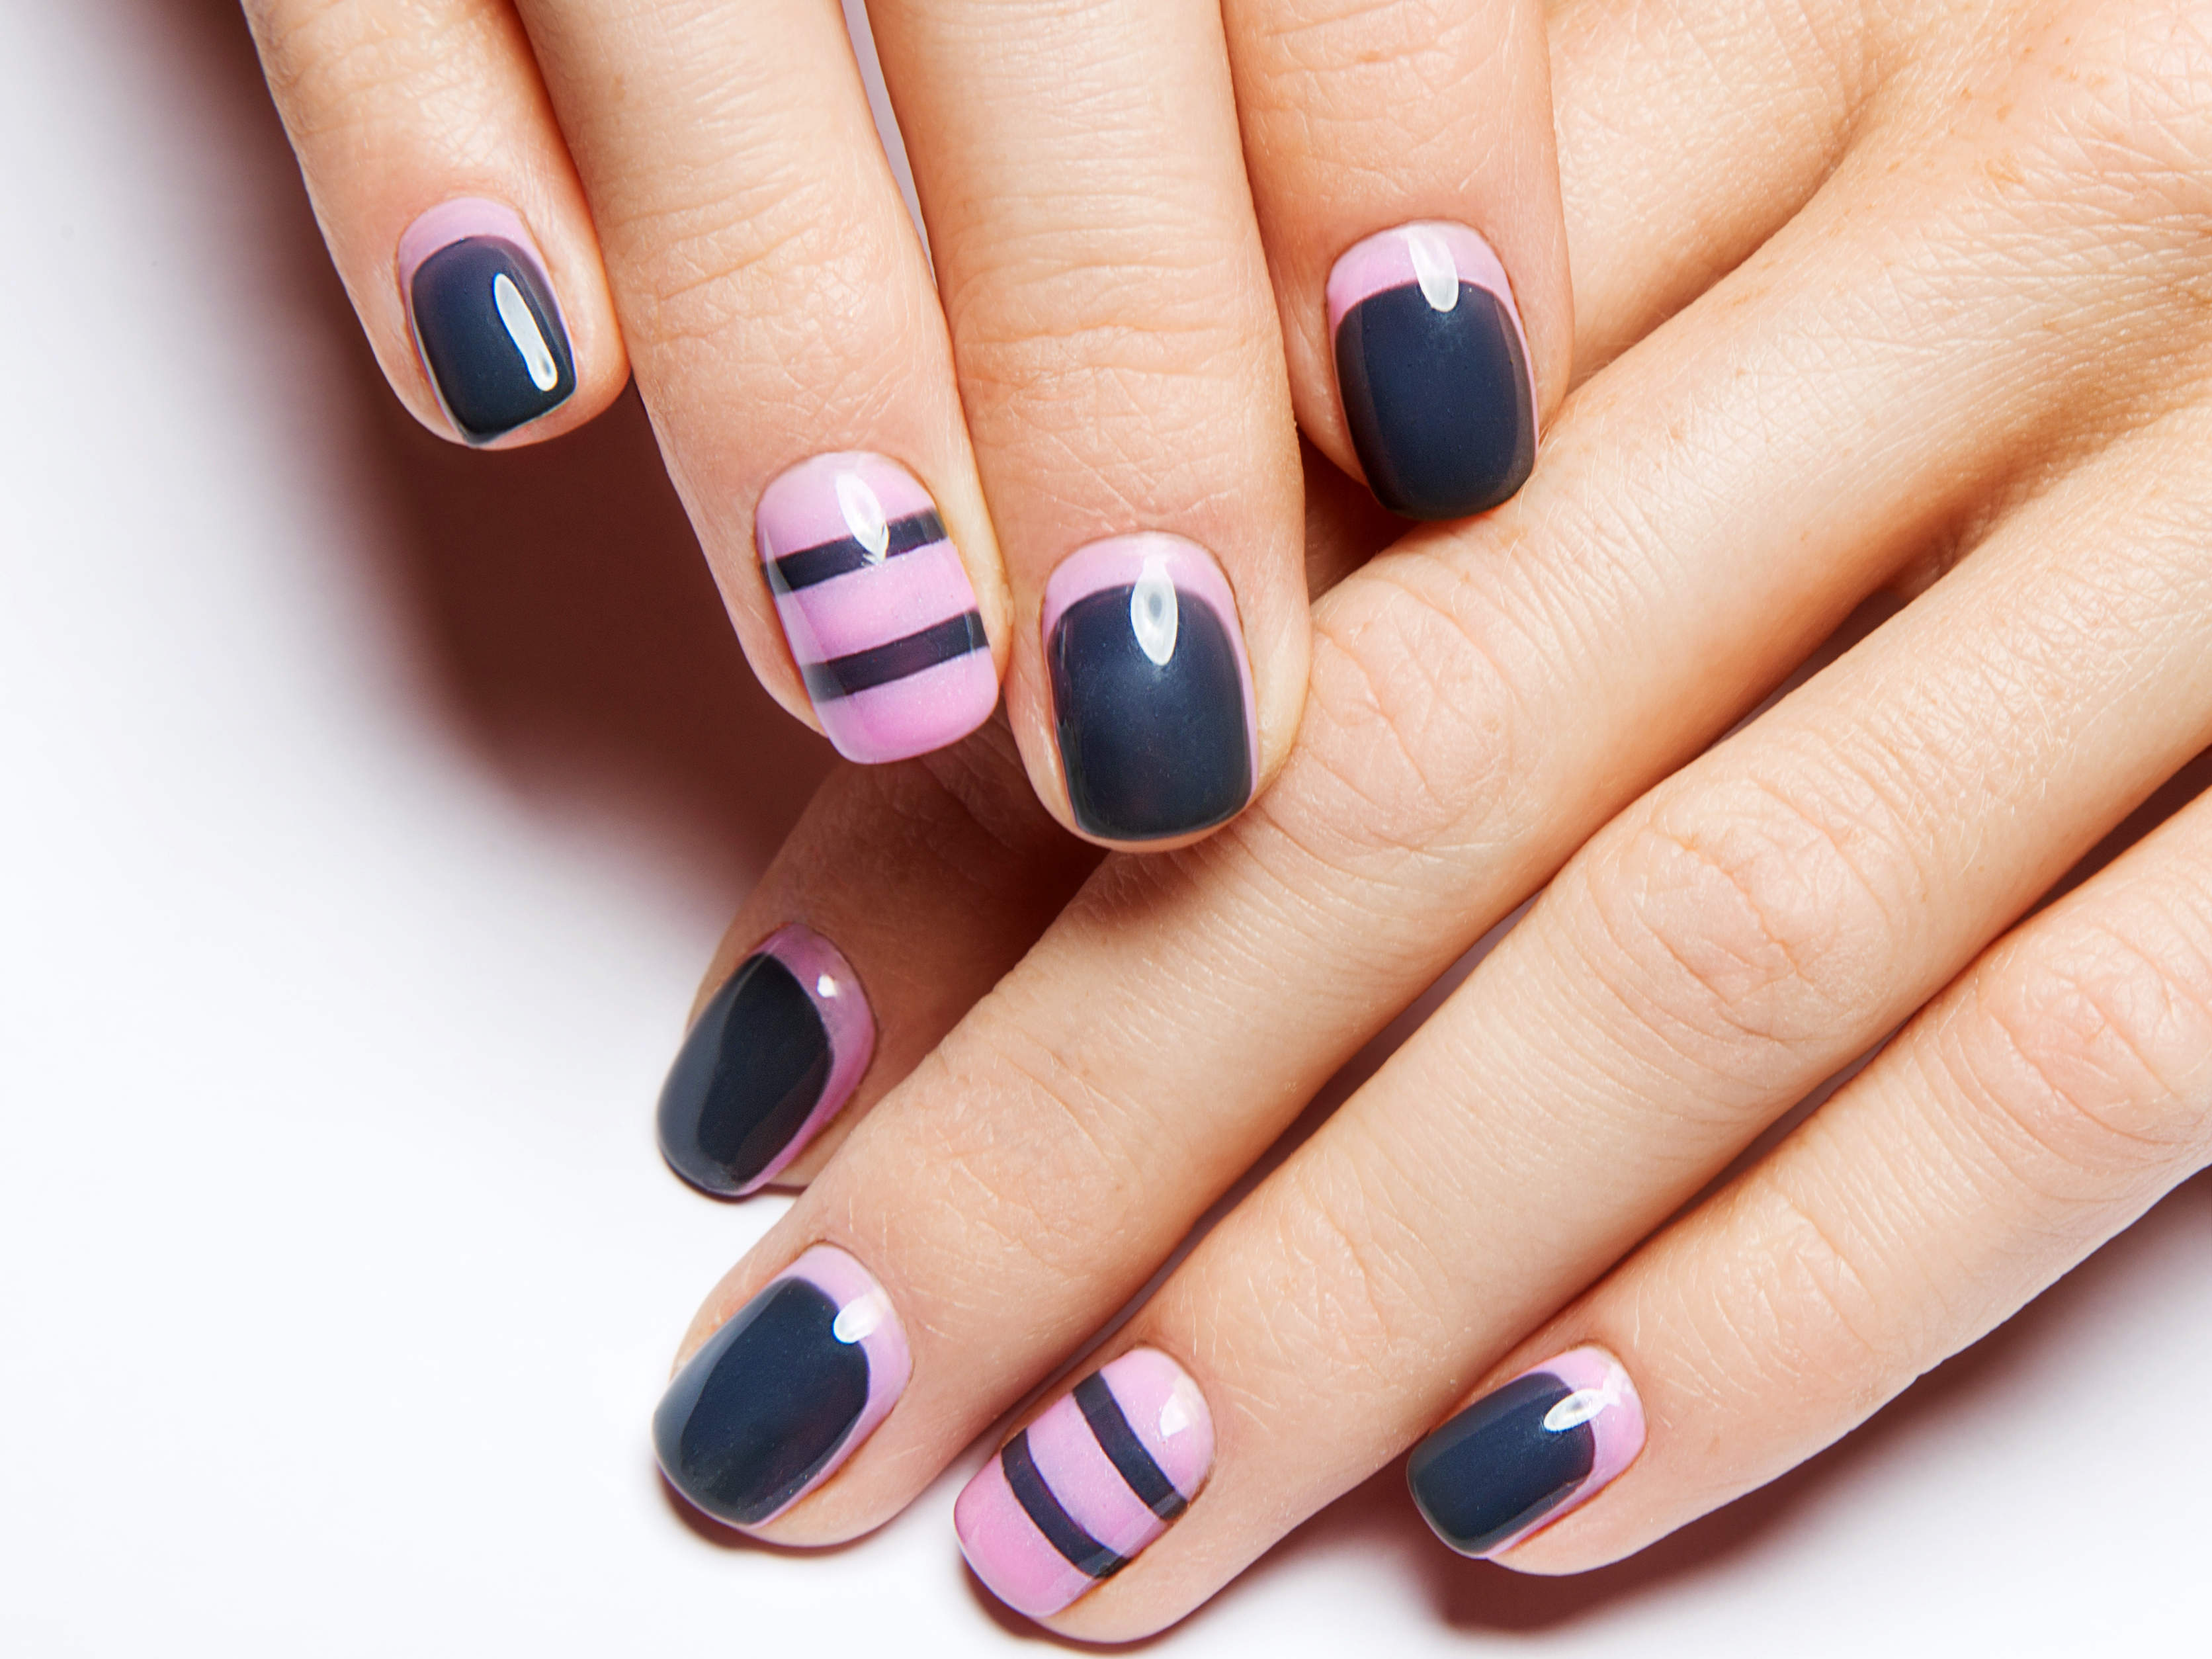 How To Remove A Gel Manicure Without Destroying Your Nails